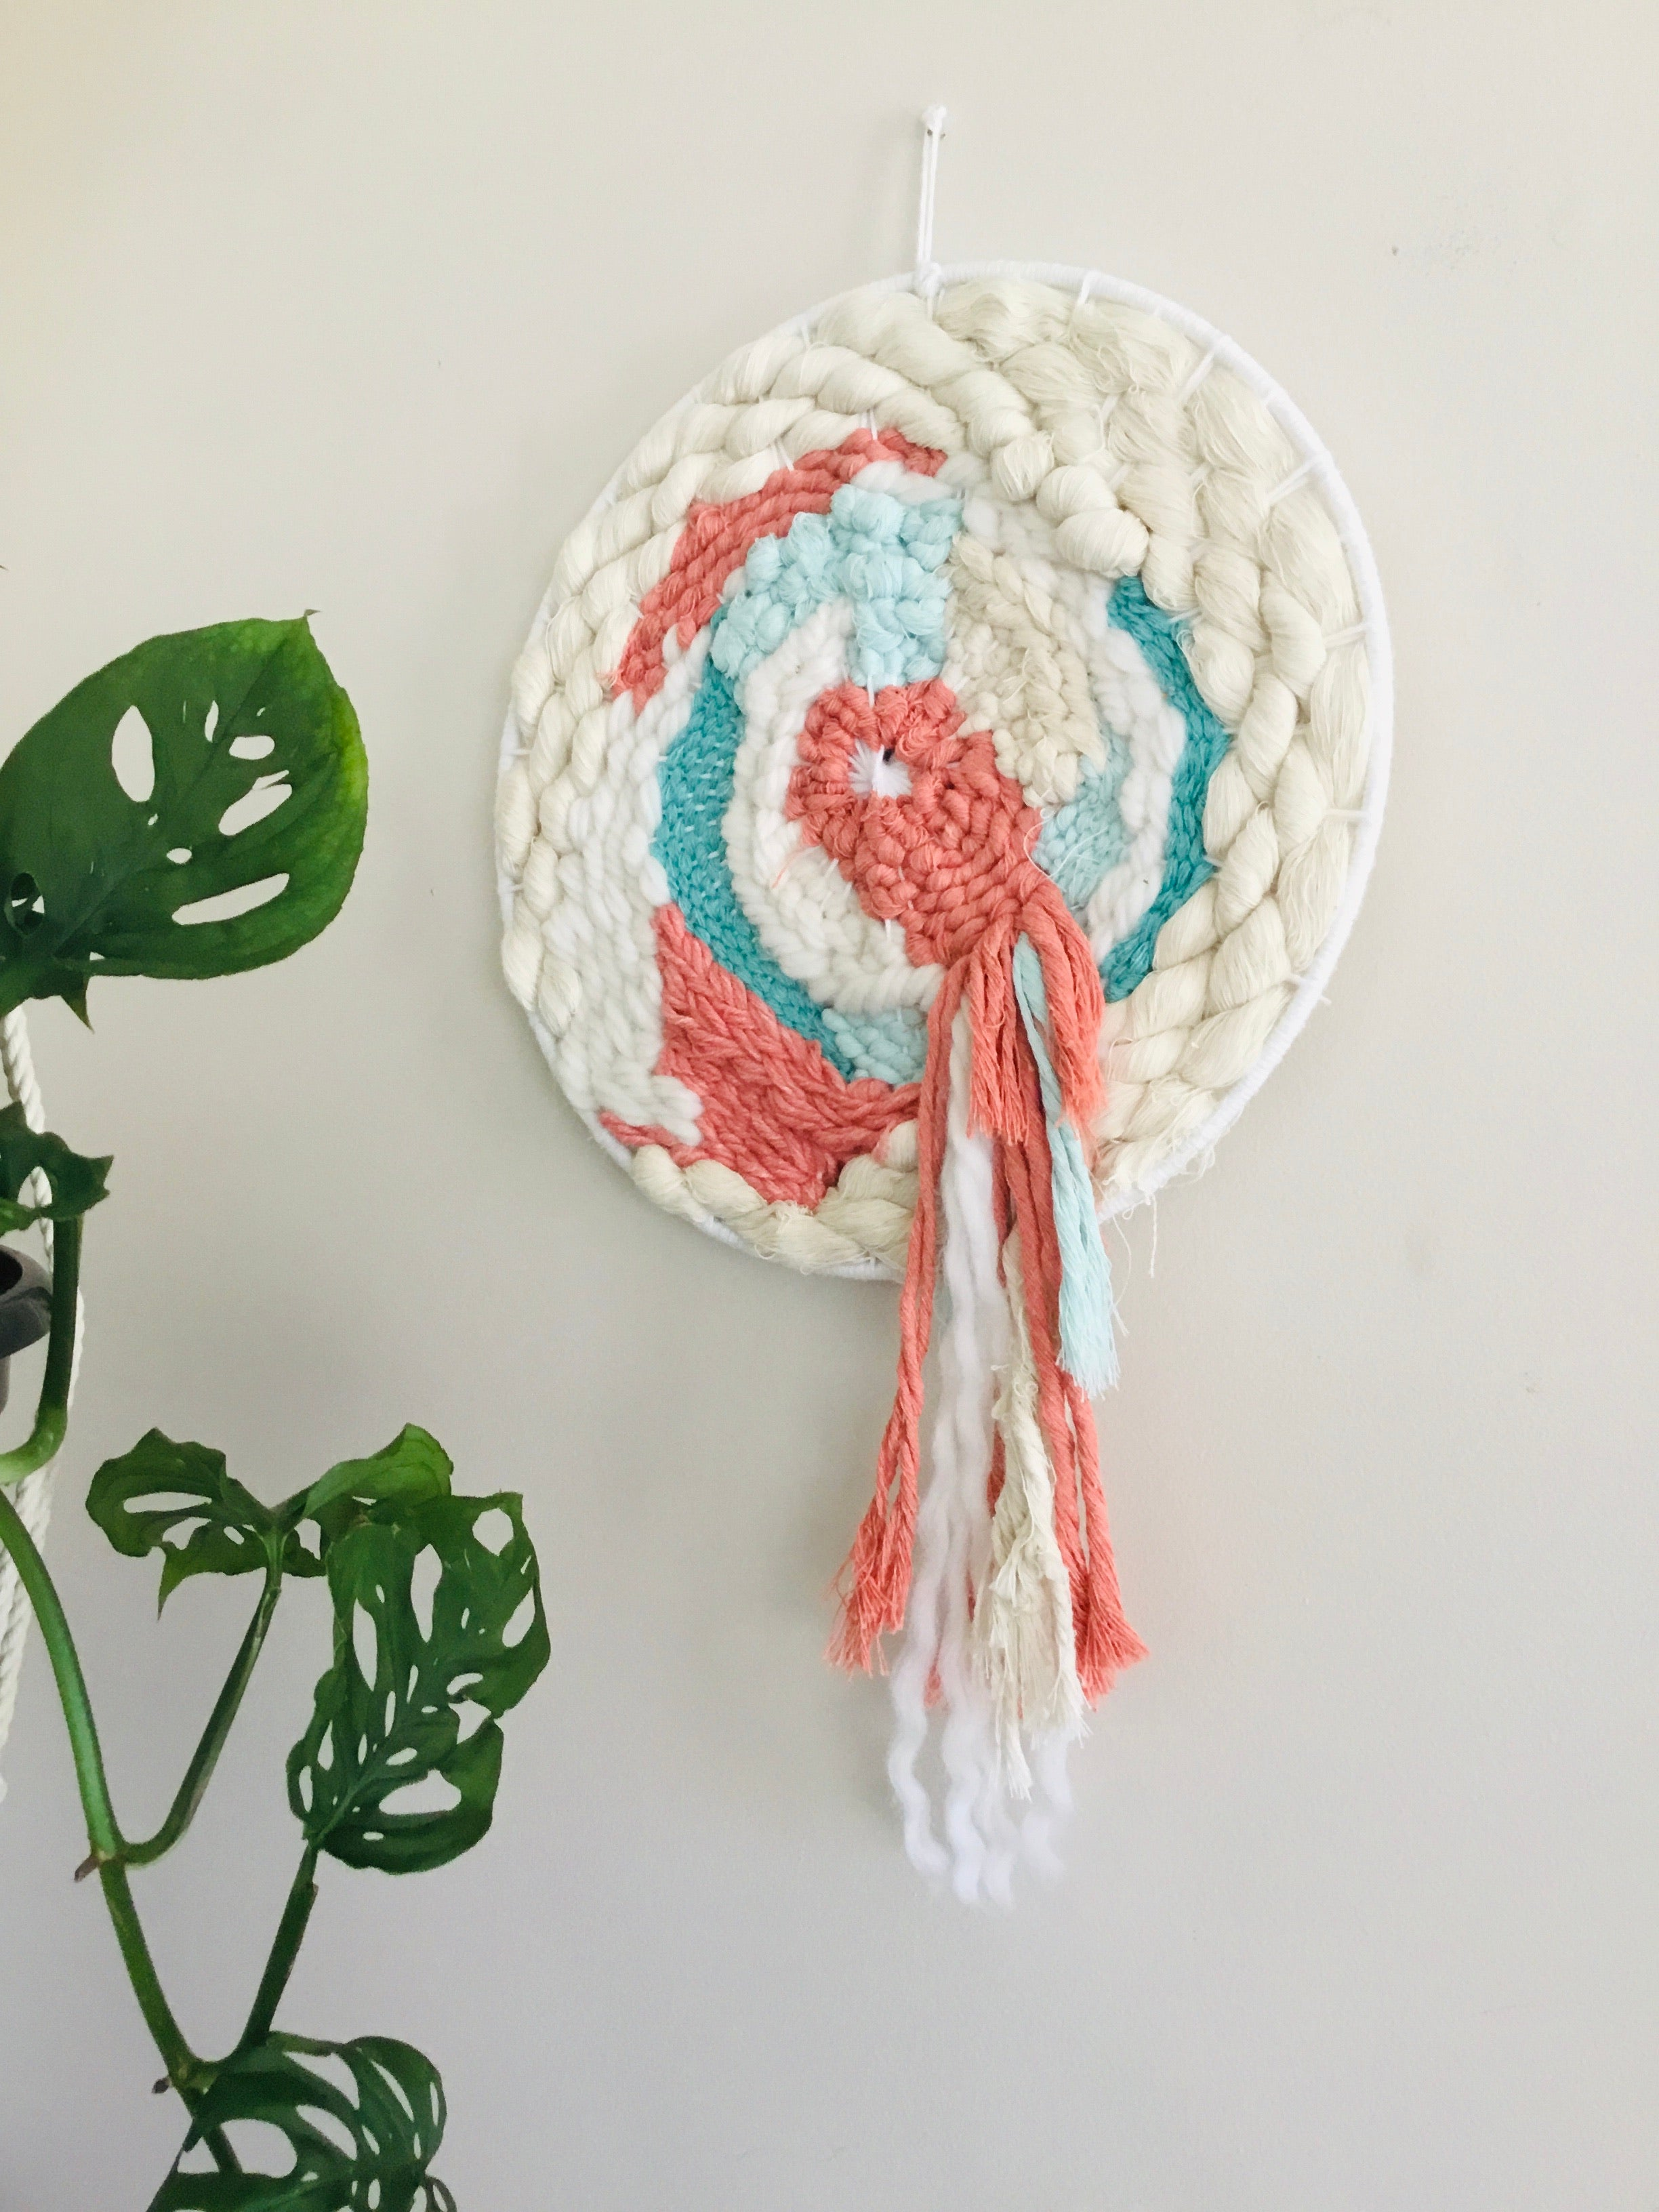 Circle Weaving Workshop Sunday 20th June 2021